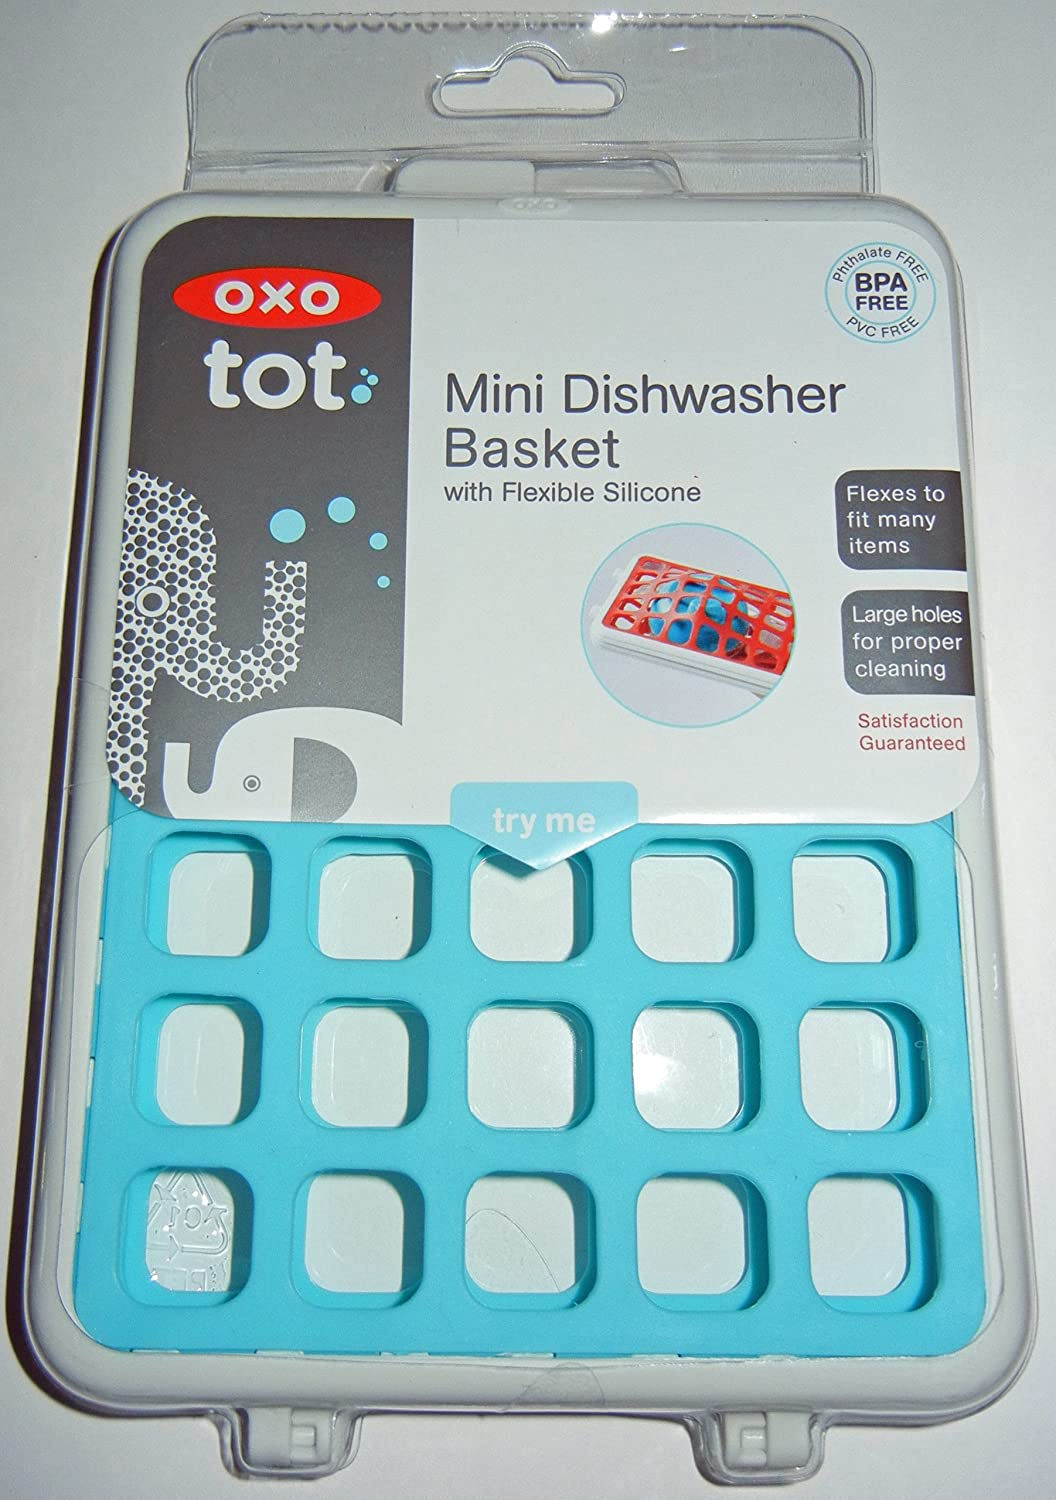 amazoncom oxo tot mini dishwasher basket aqua baby bottle supplies baby